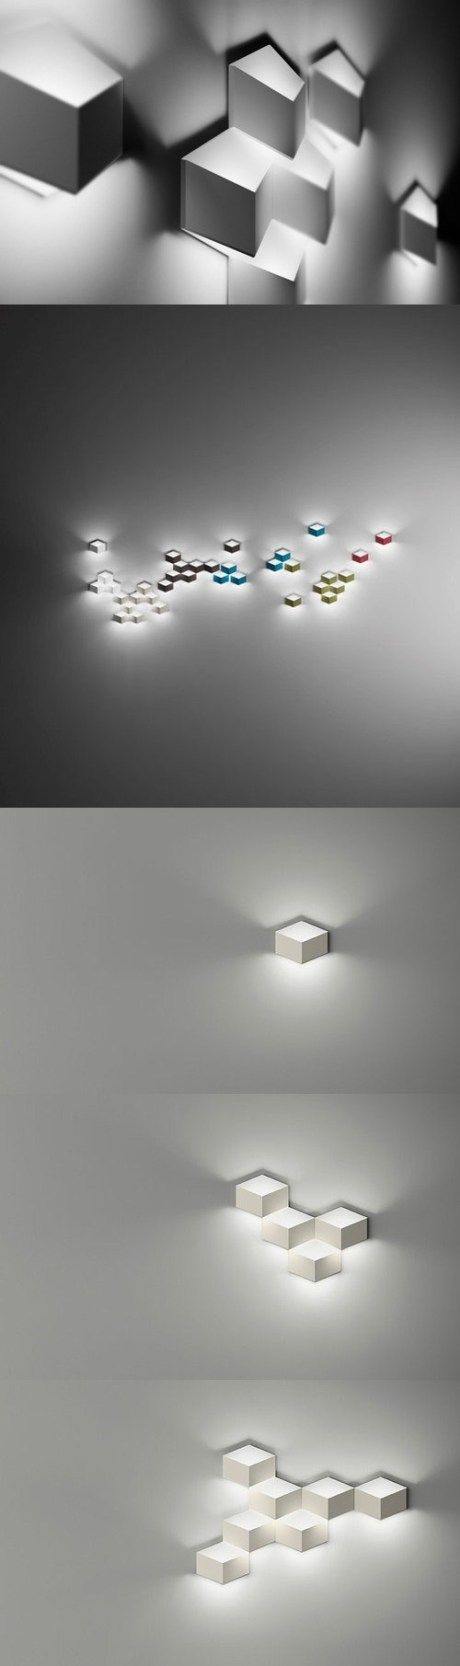 These lights show modularity because they all share the same shape and create a pixelated look due to repetition.